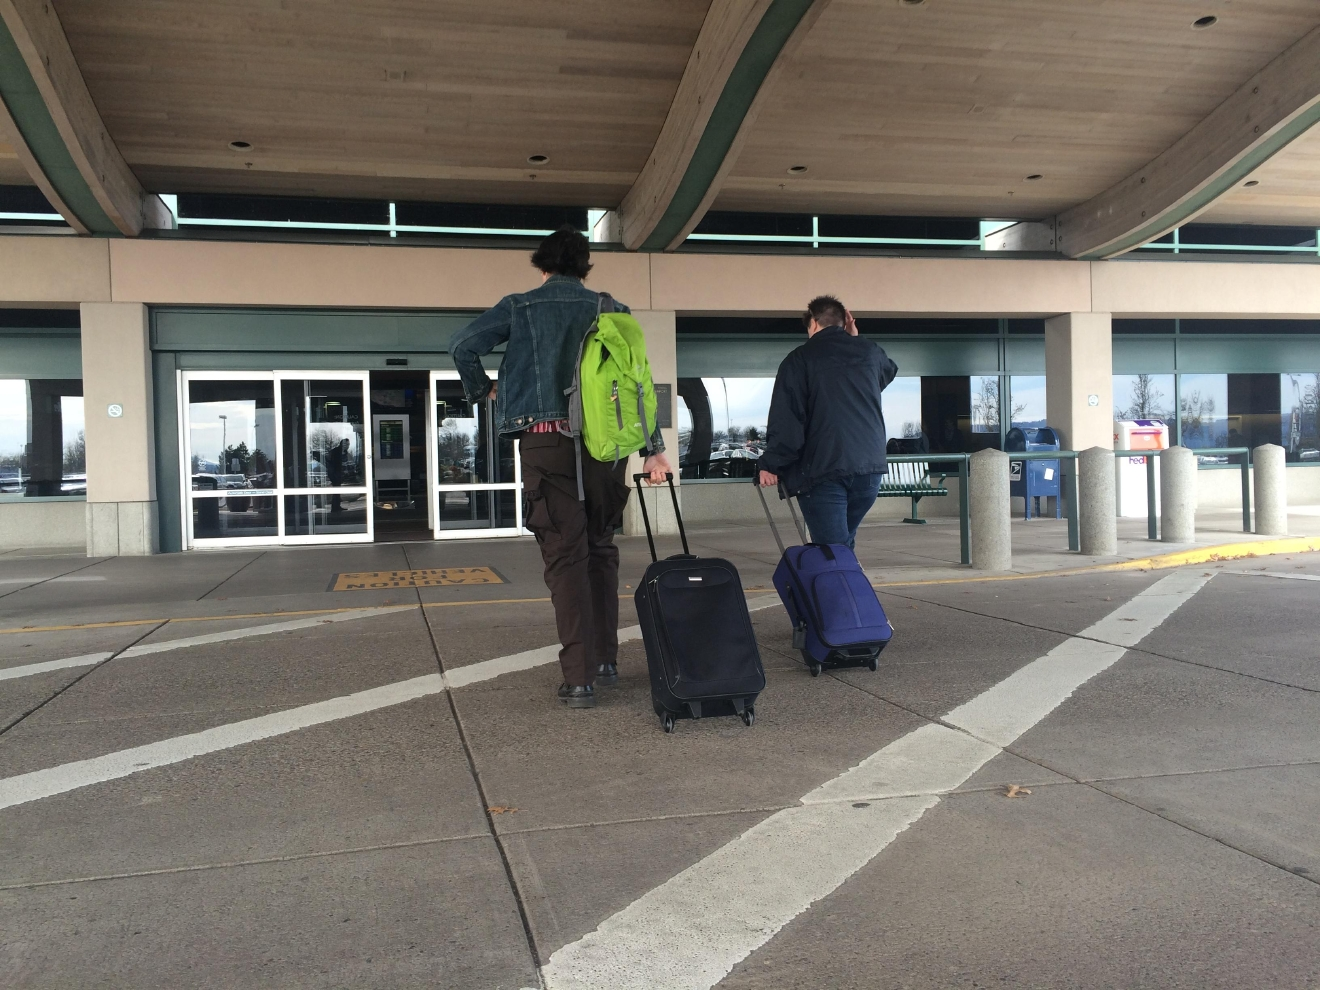 The Eugene Airport has seen increases in traffic in recent years. (SBG photo)